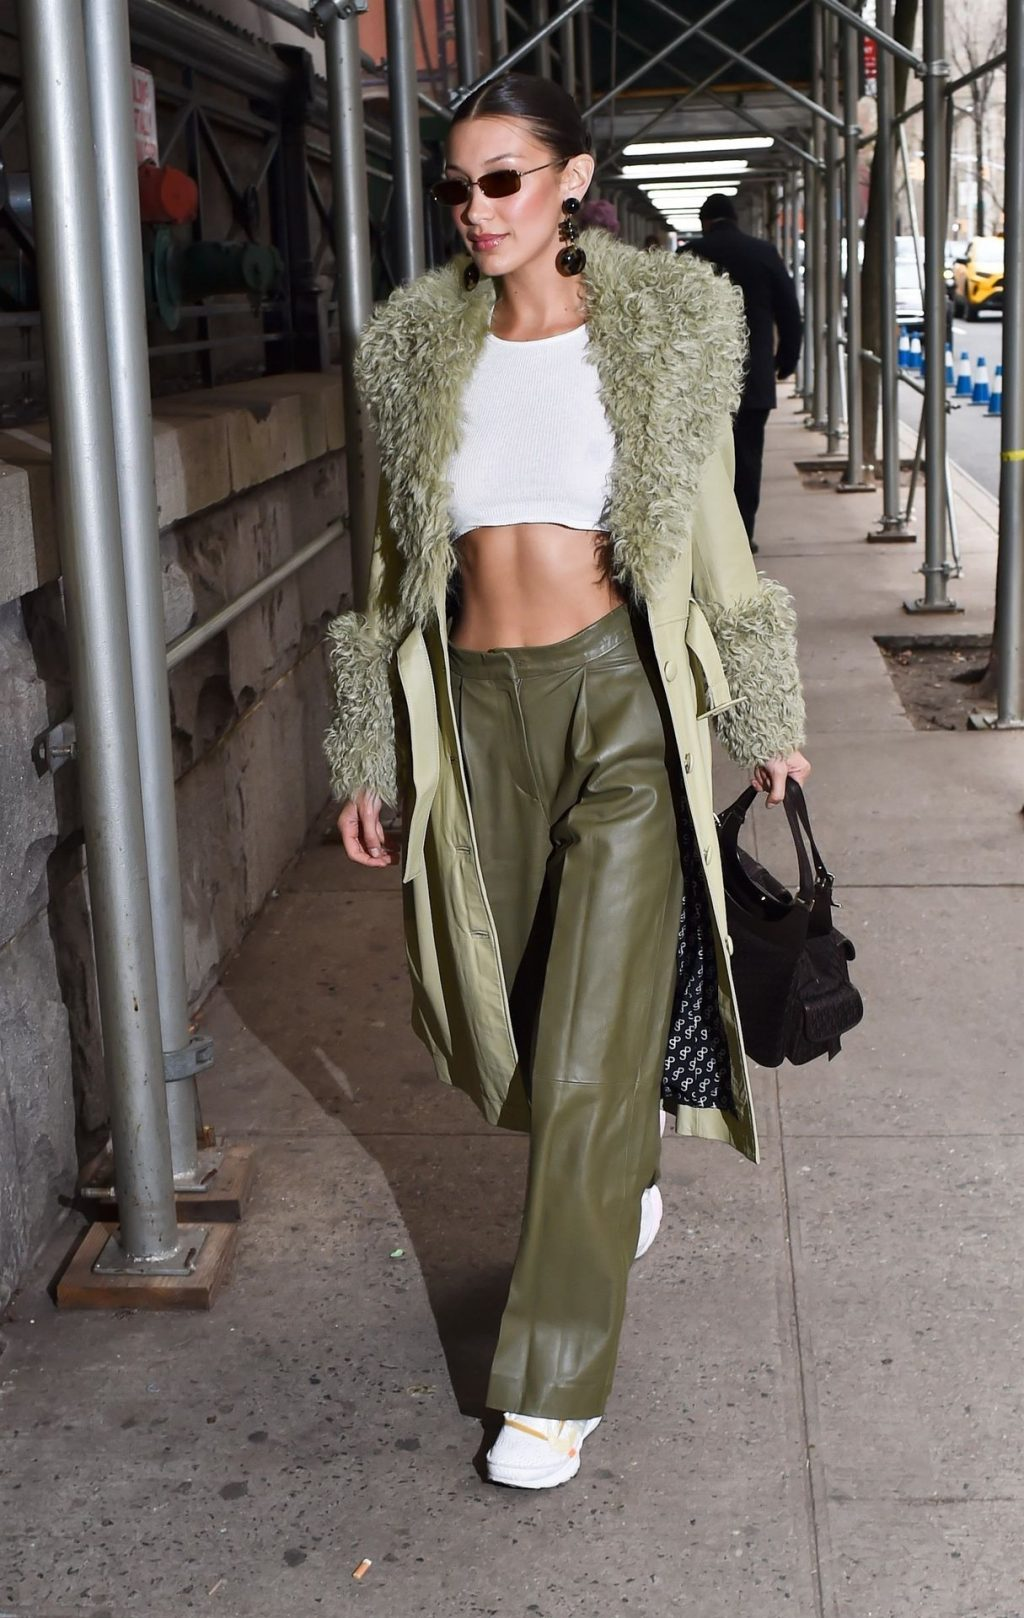 Bella Hadid See through The Fappening Blog 9 1024x1618 - Braless Bella Hadid Arrives at the Park Avenue Armory for the Marc Jacobs Fashion Show (59 Photos)